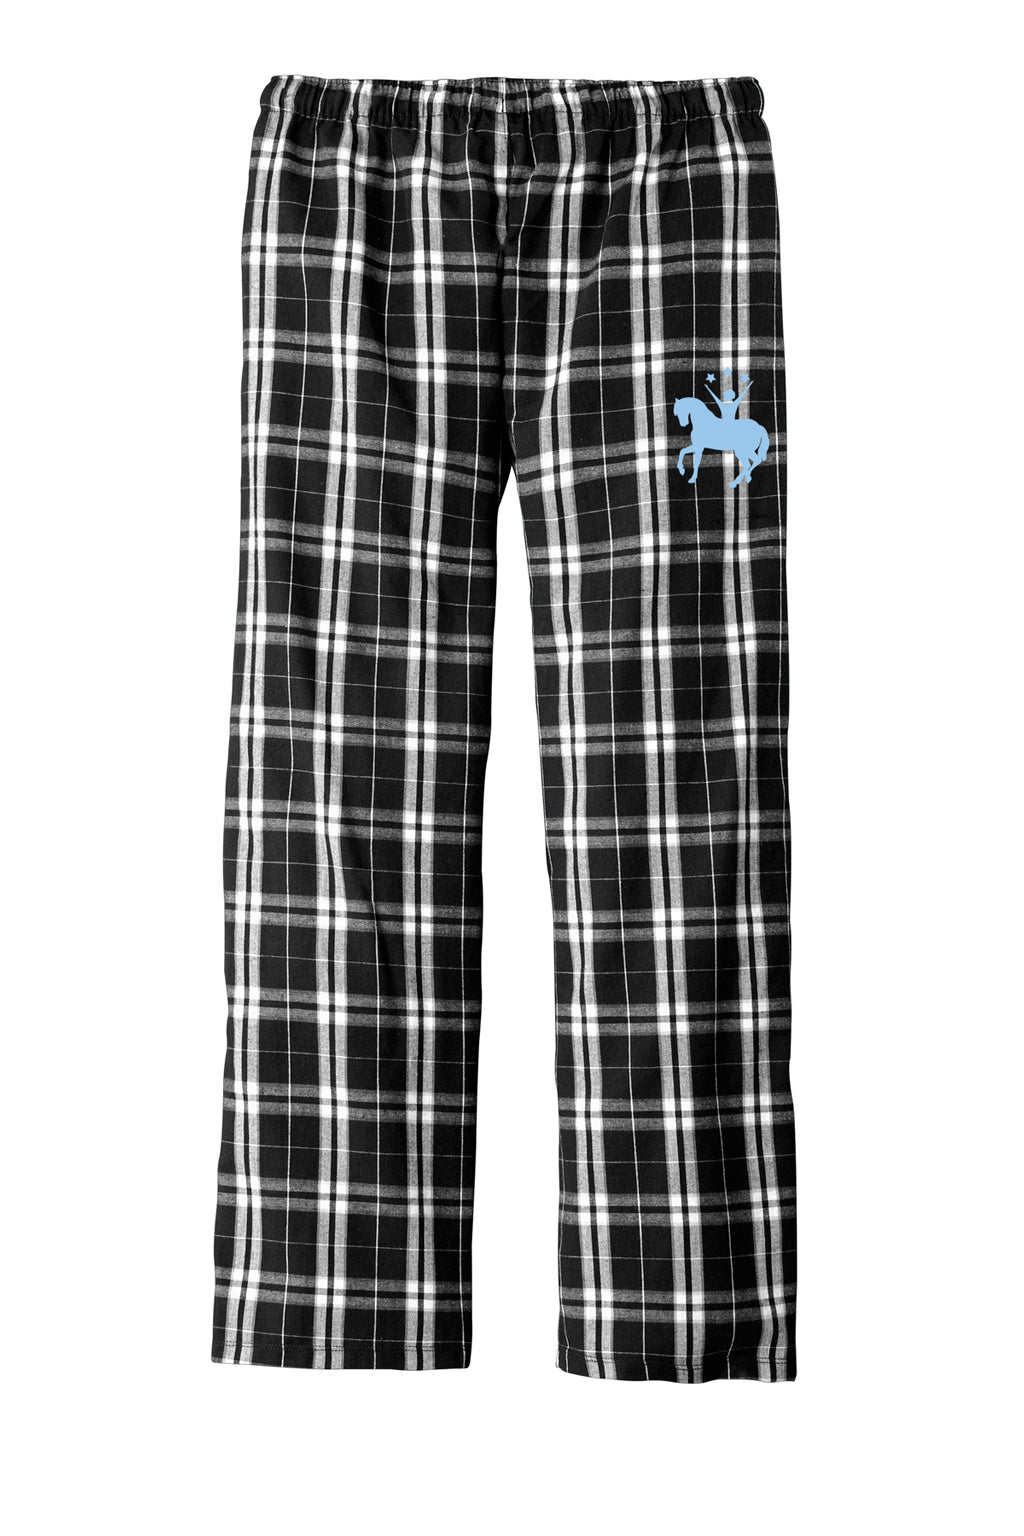 Ready Set Ride Flannel Pants